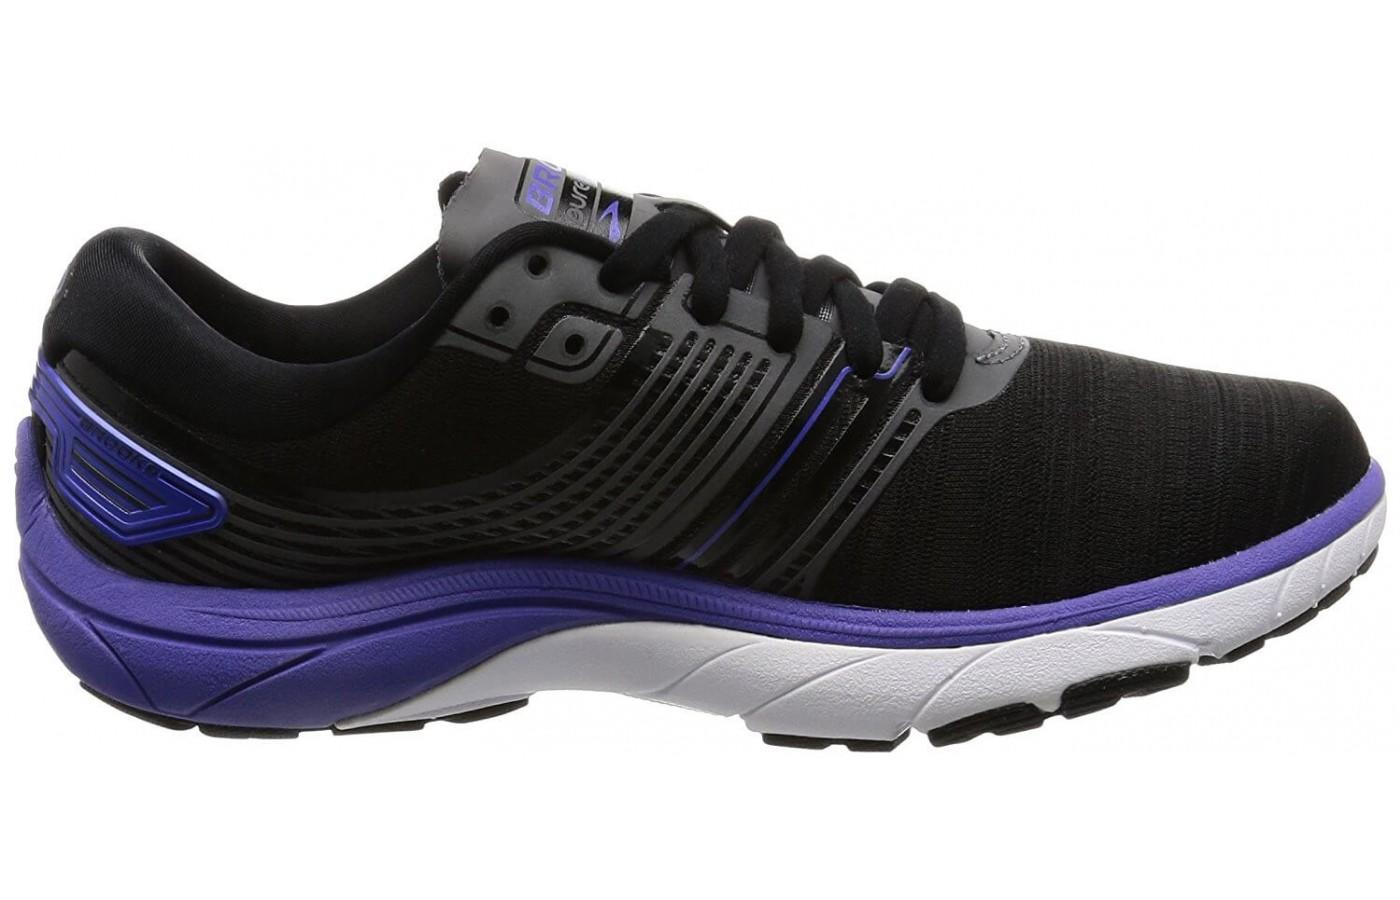 bdbb4f692f6 ... Brooks PureCadence 6 is a lightweight stability shoe ...